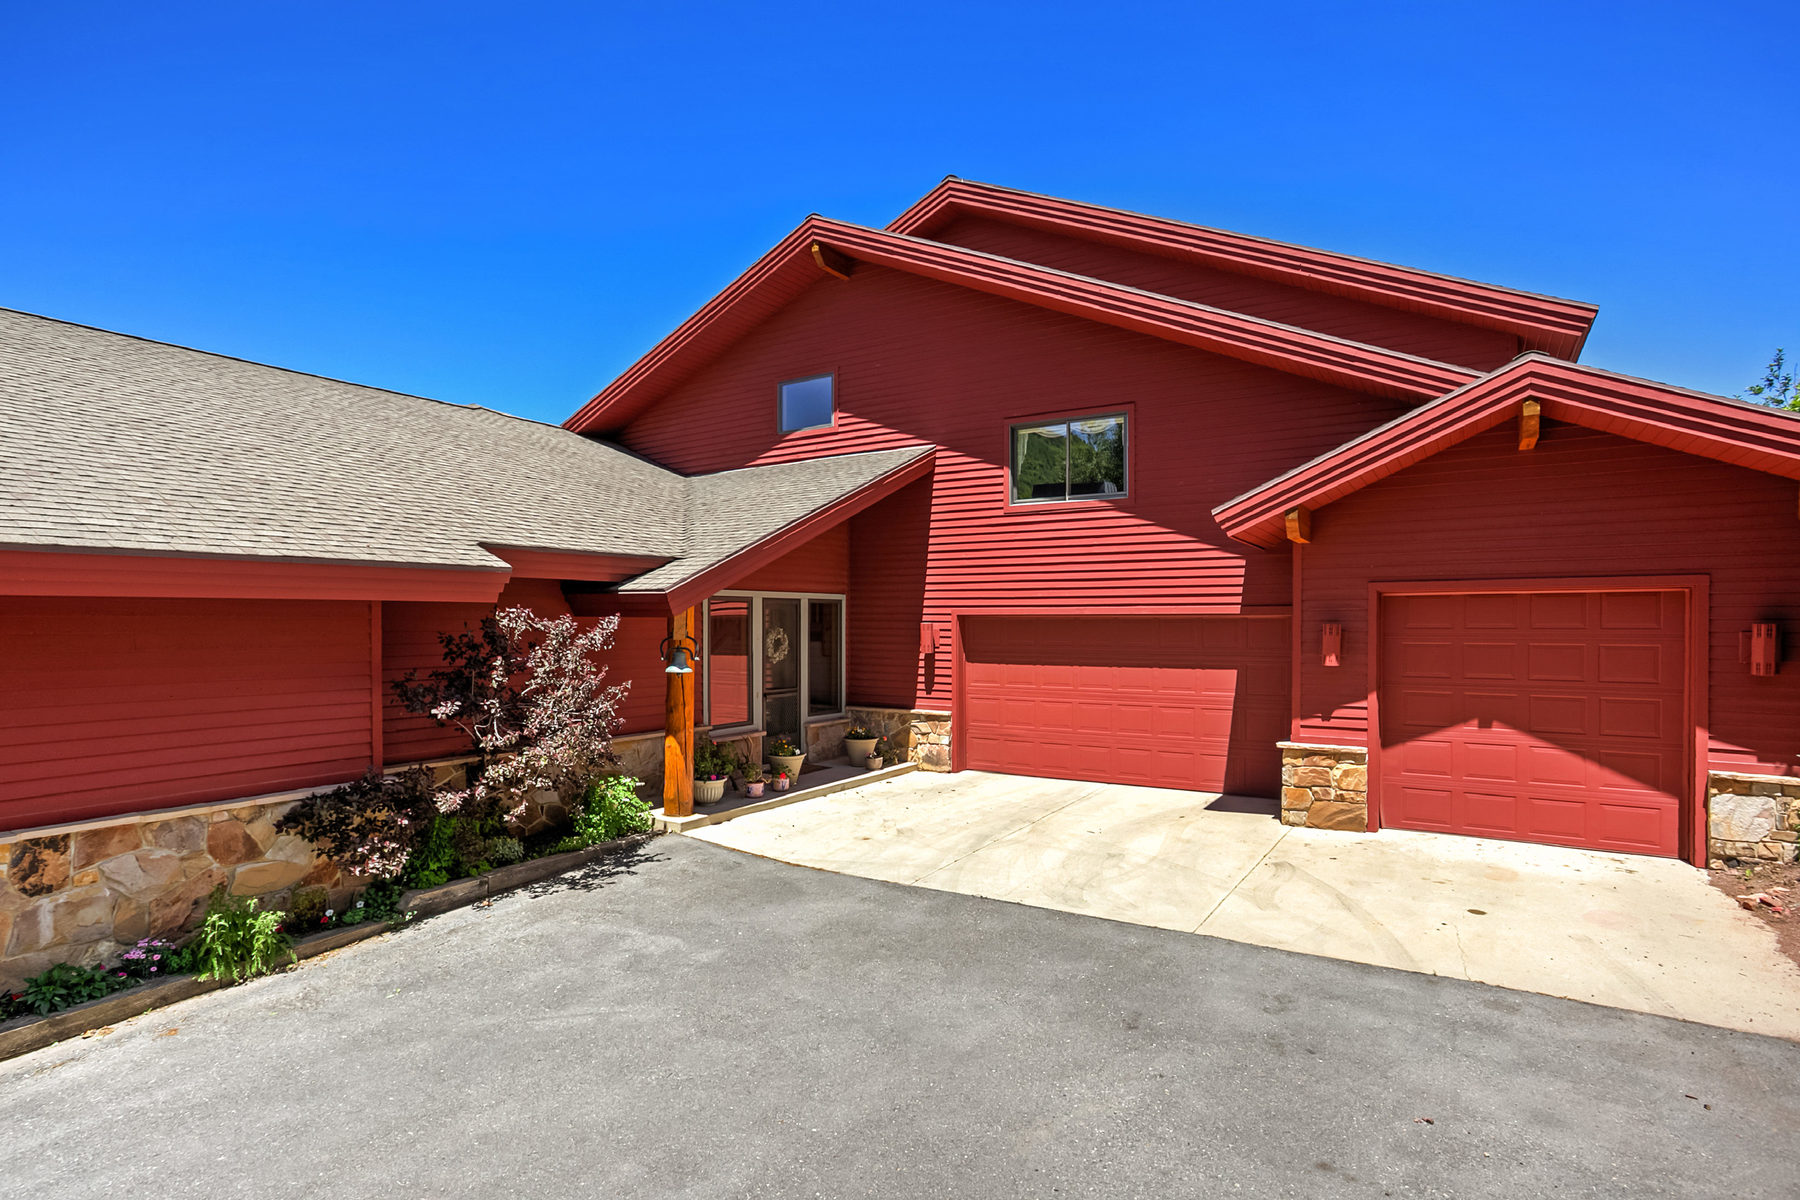 Single Family Home for Sale at Inviting Private Mountain Home With Views 7497 N Tall Oaks Dr Park City, Utah, 84098 United States